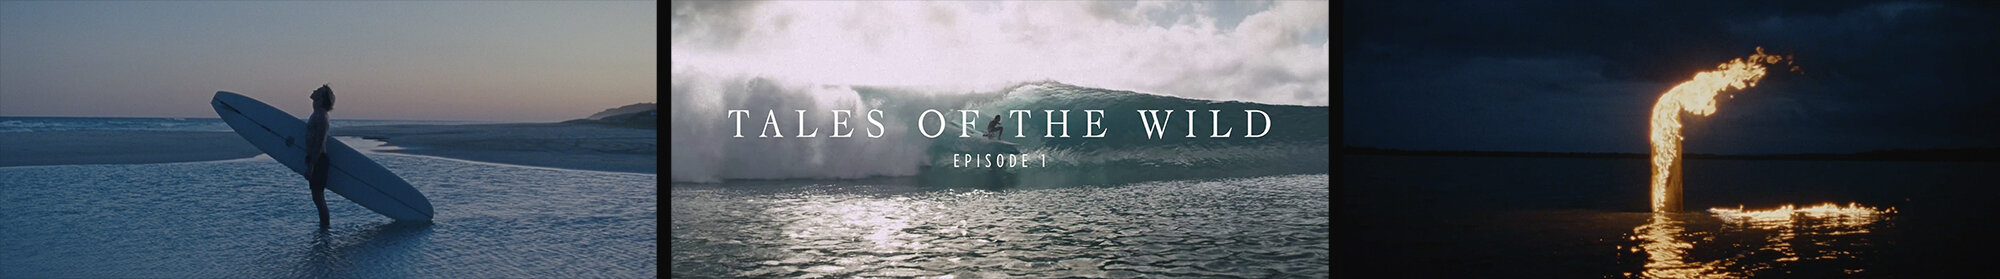 """DIOR  SAUVAGE I TALES OF THE WILD - Ep. 4 """"EL CAPITAN"""" I Dir. CLEMENT BEAUVAIS"""